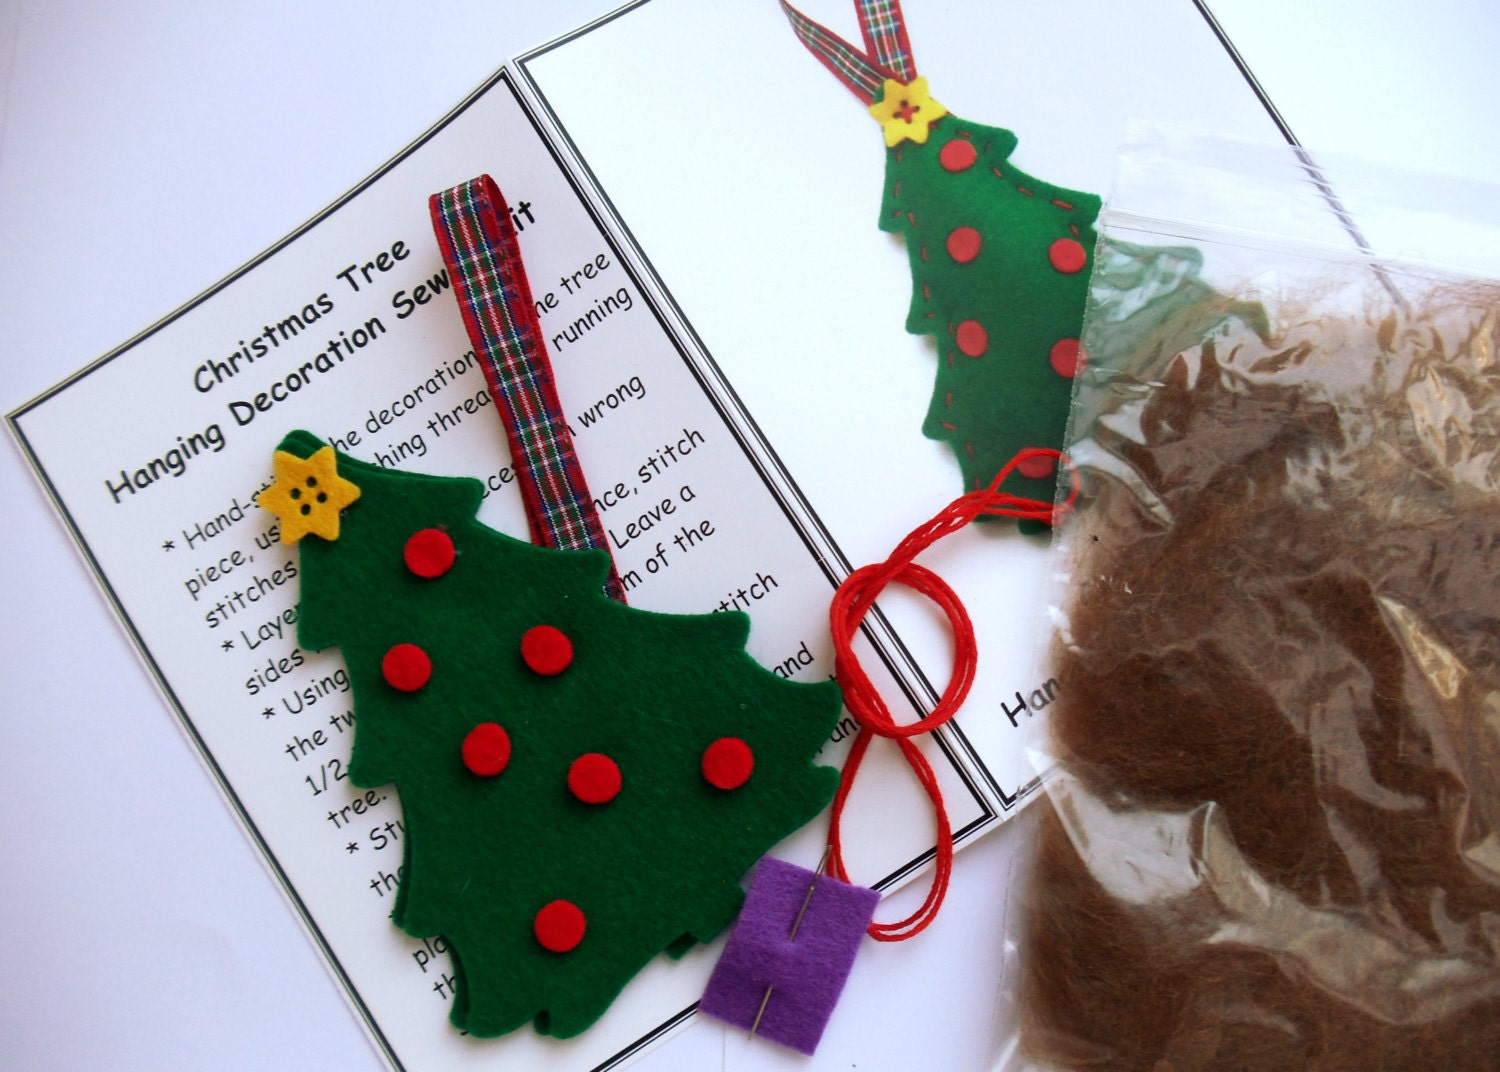 Sewing Kit Felt Christmas Decorations Craft Kit Christmas Tree Sewing Kit - TheWoollyKnitter